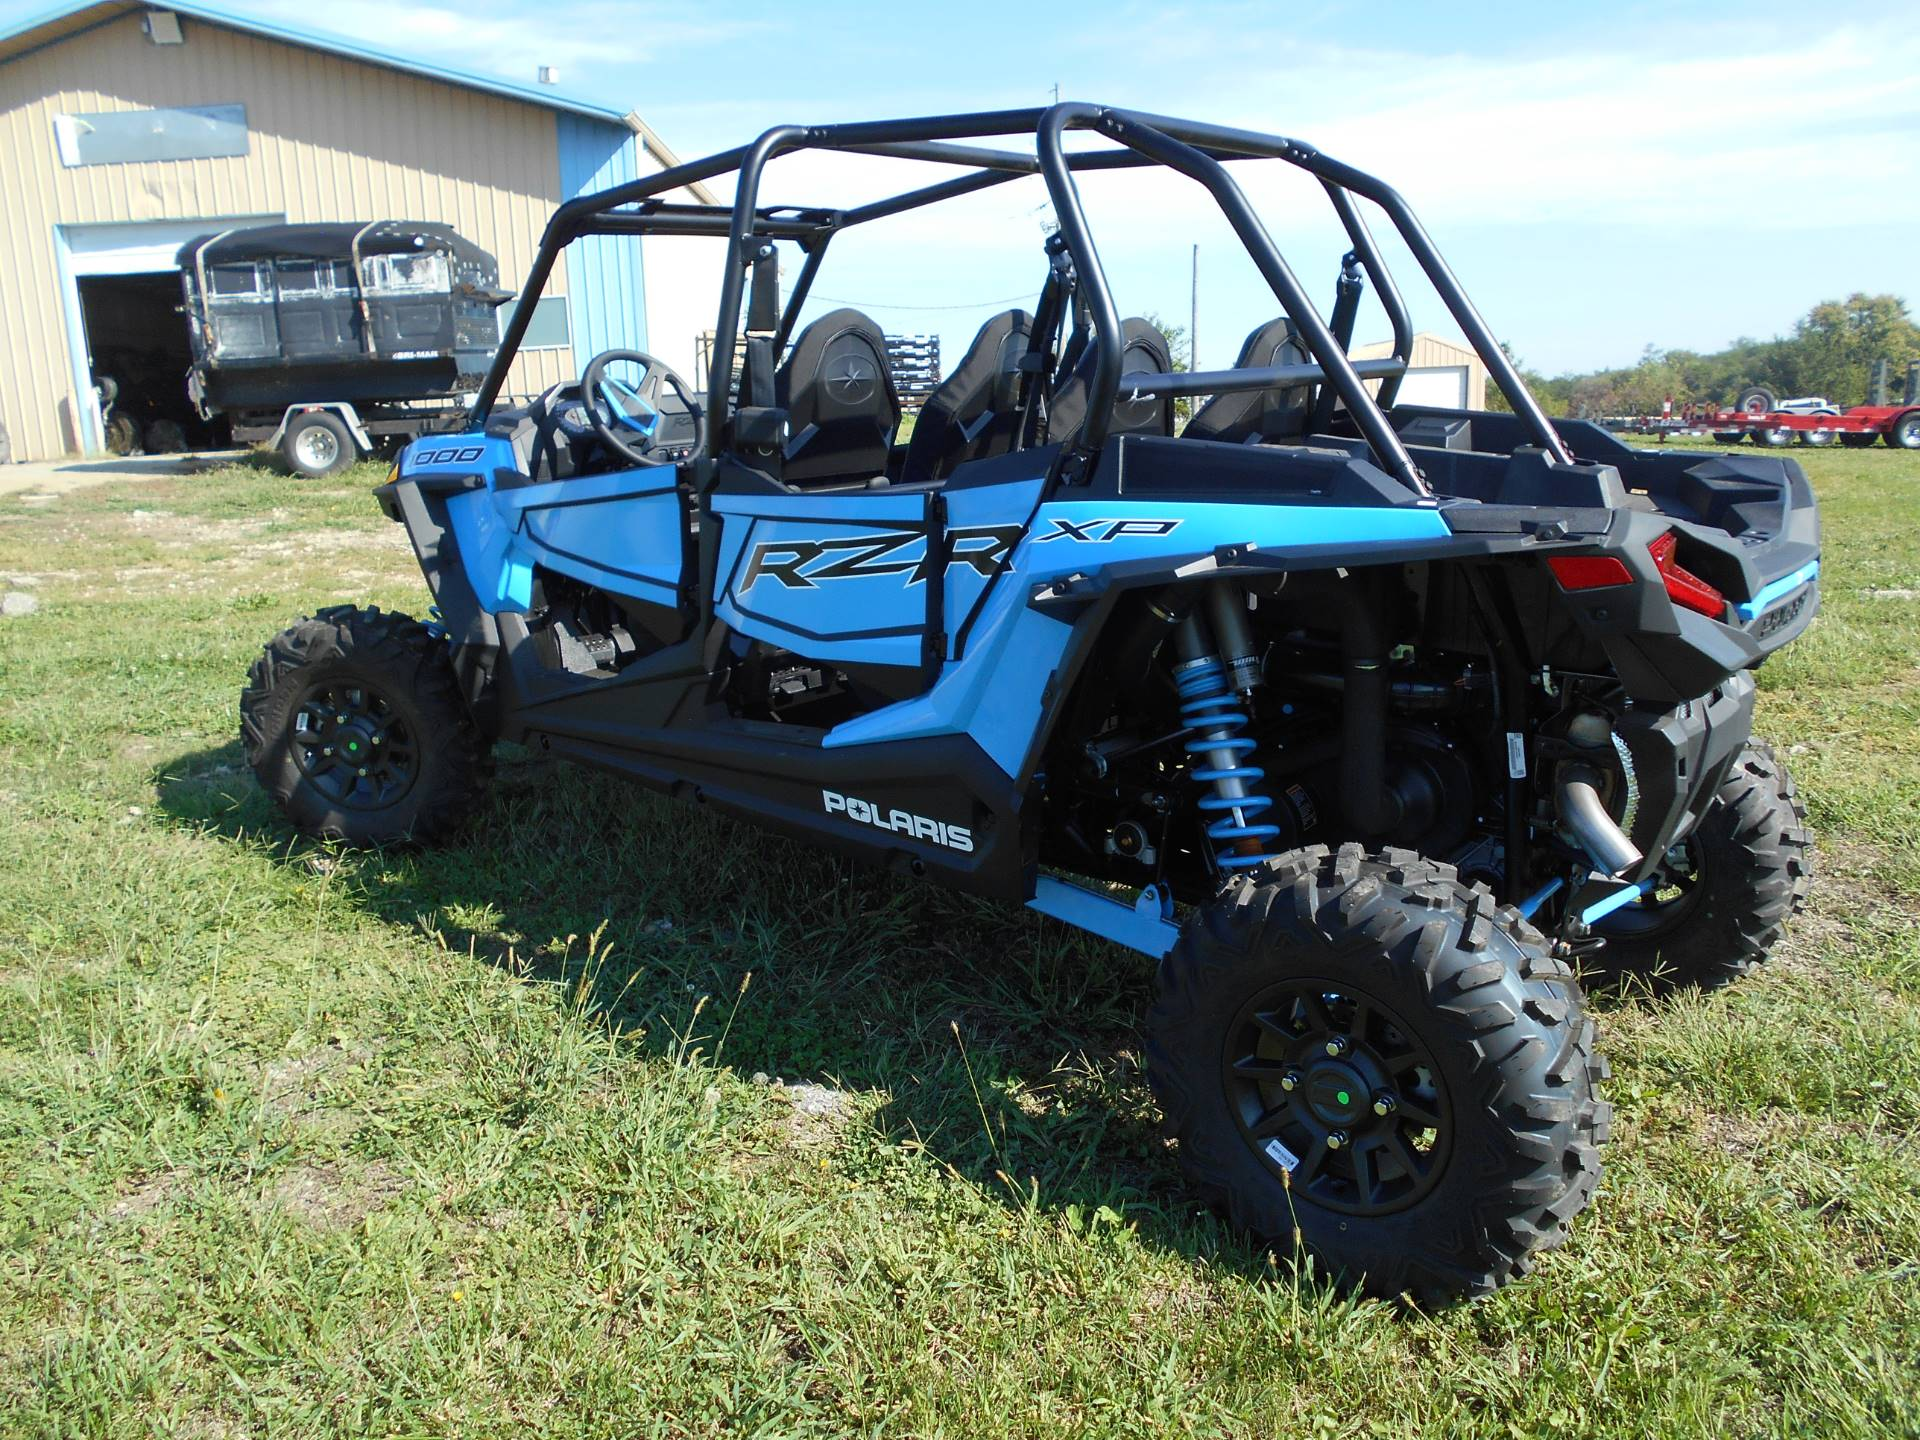 2020 Polaris RZR XP 4 1000 in Kansas City, Kansas - Photo 3